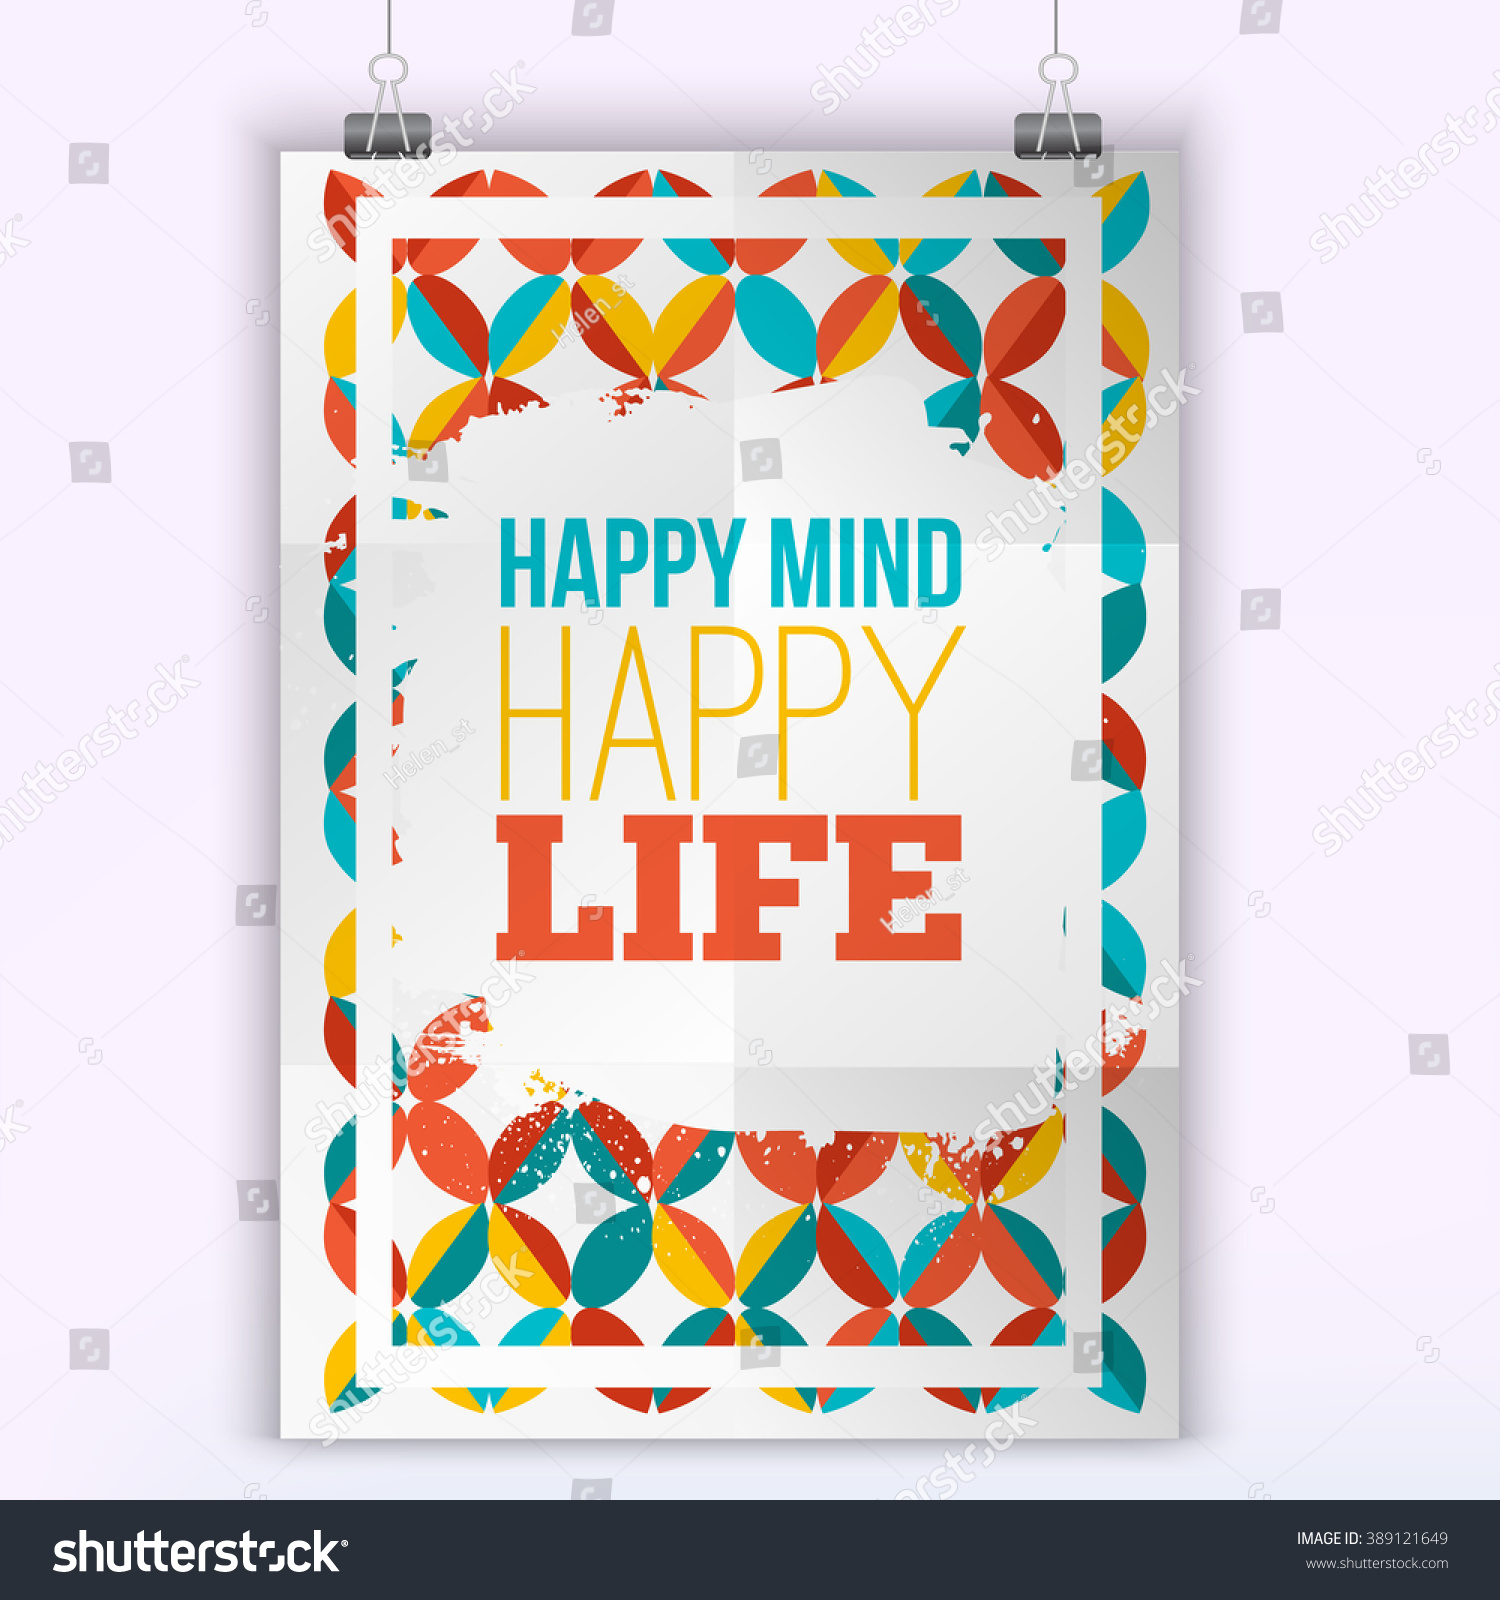 Happy Life Inspirational Quotes Vector Happy Mind Happy Life Inspirational Stock Vector 389121649